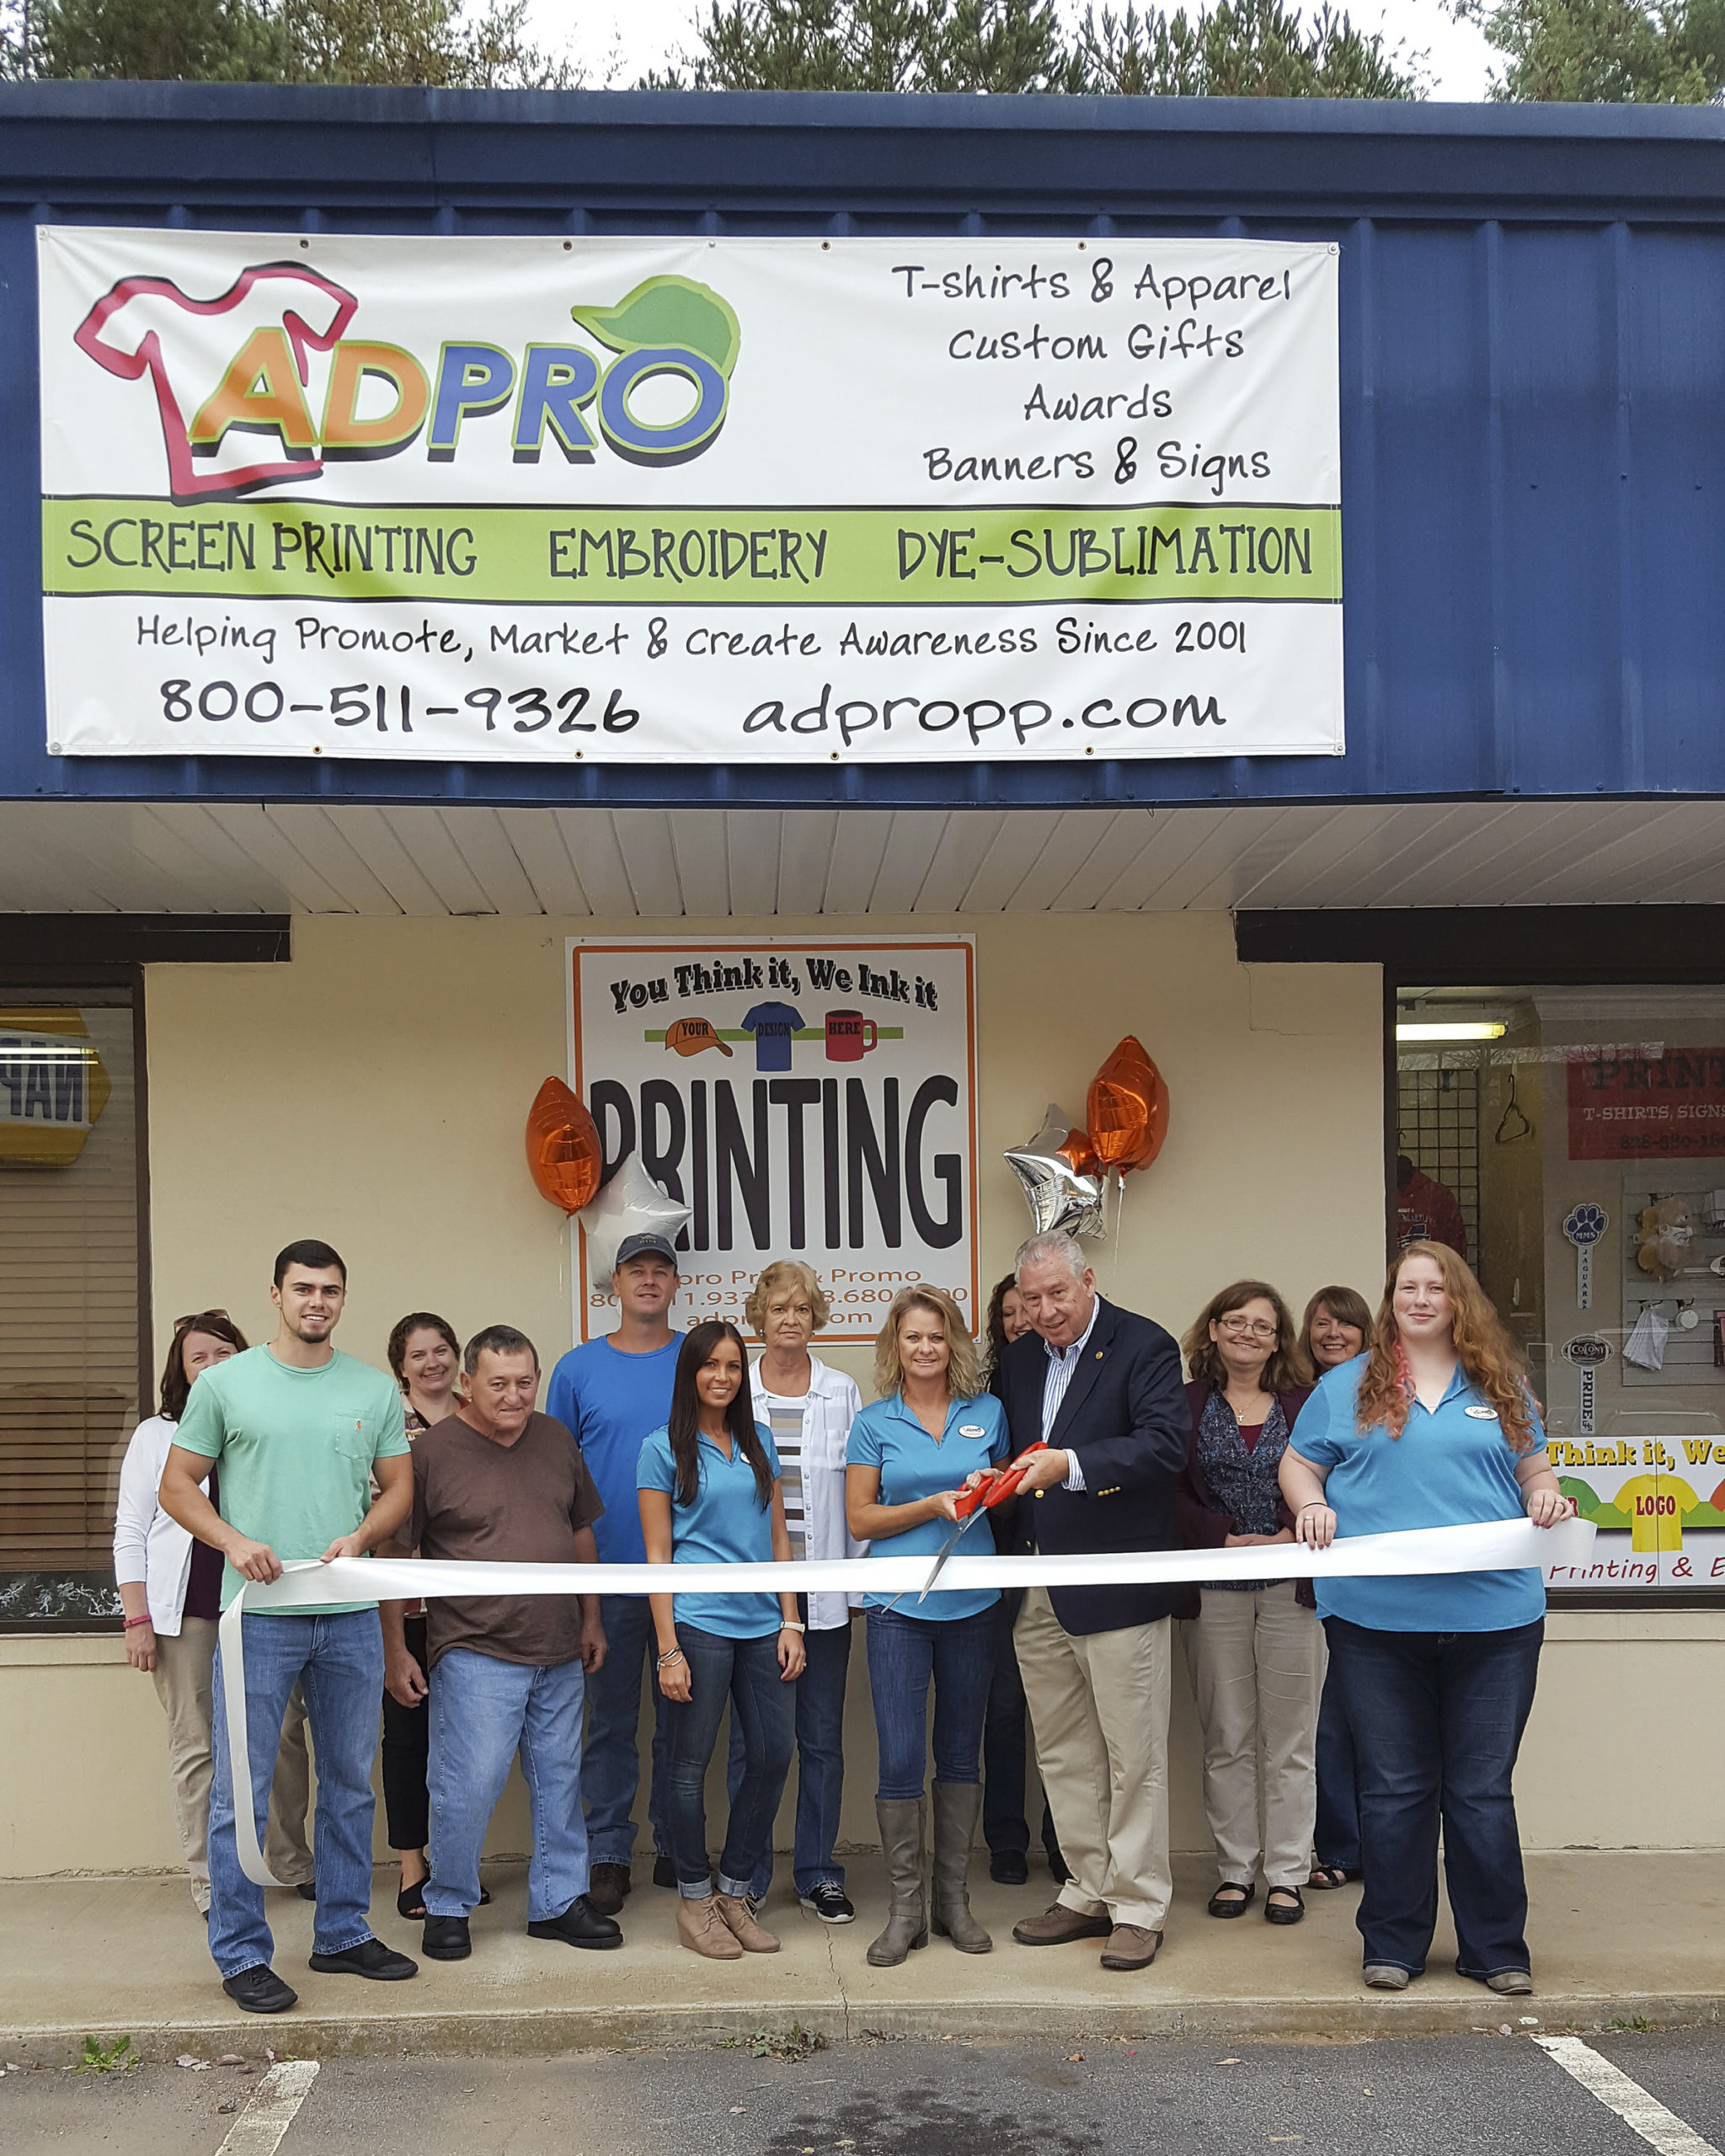 Photo of owner, family, employees, and chamber of commerce representative preparing to cut the ribbon for grant opening in front of Adpro store